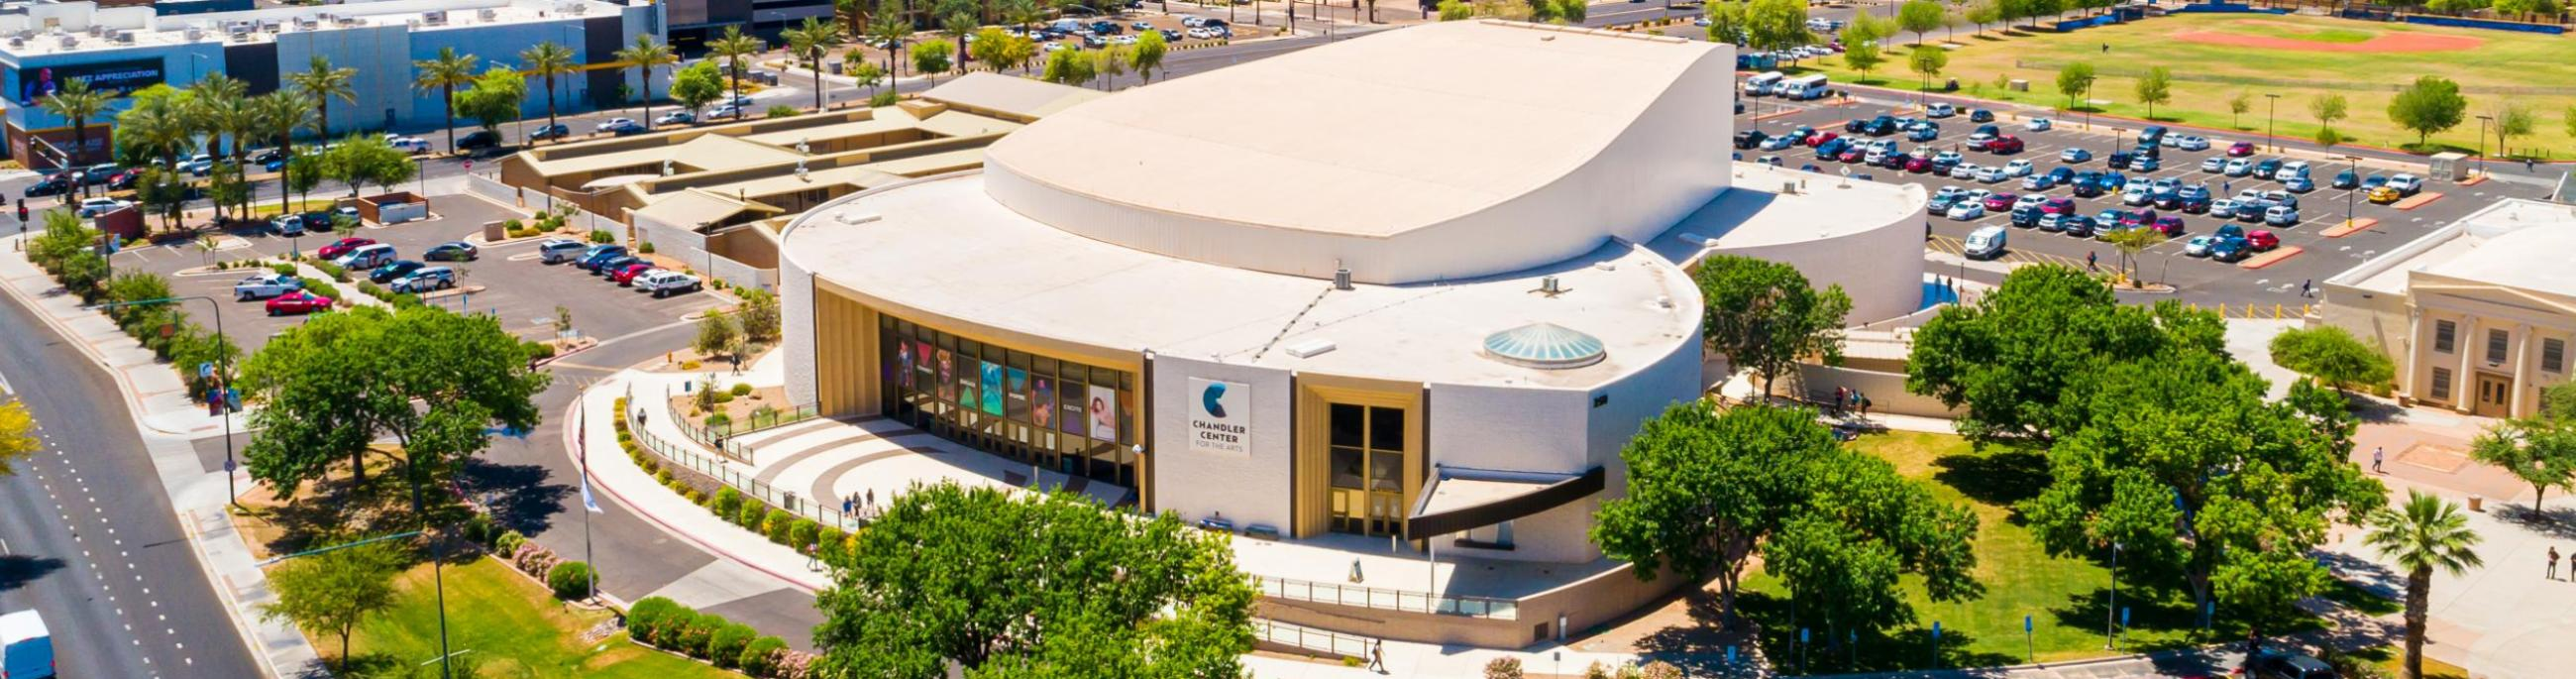 Chandler Center for the Arts is an engaging welcoming space serving our community.